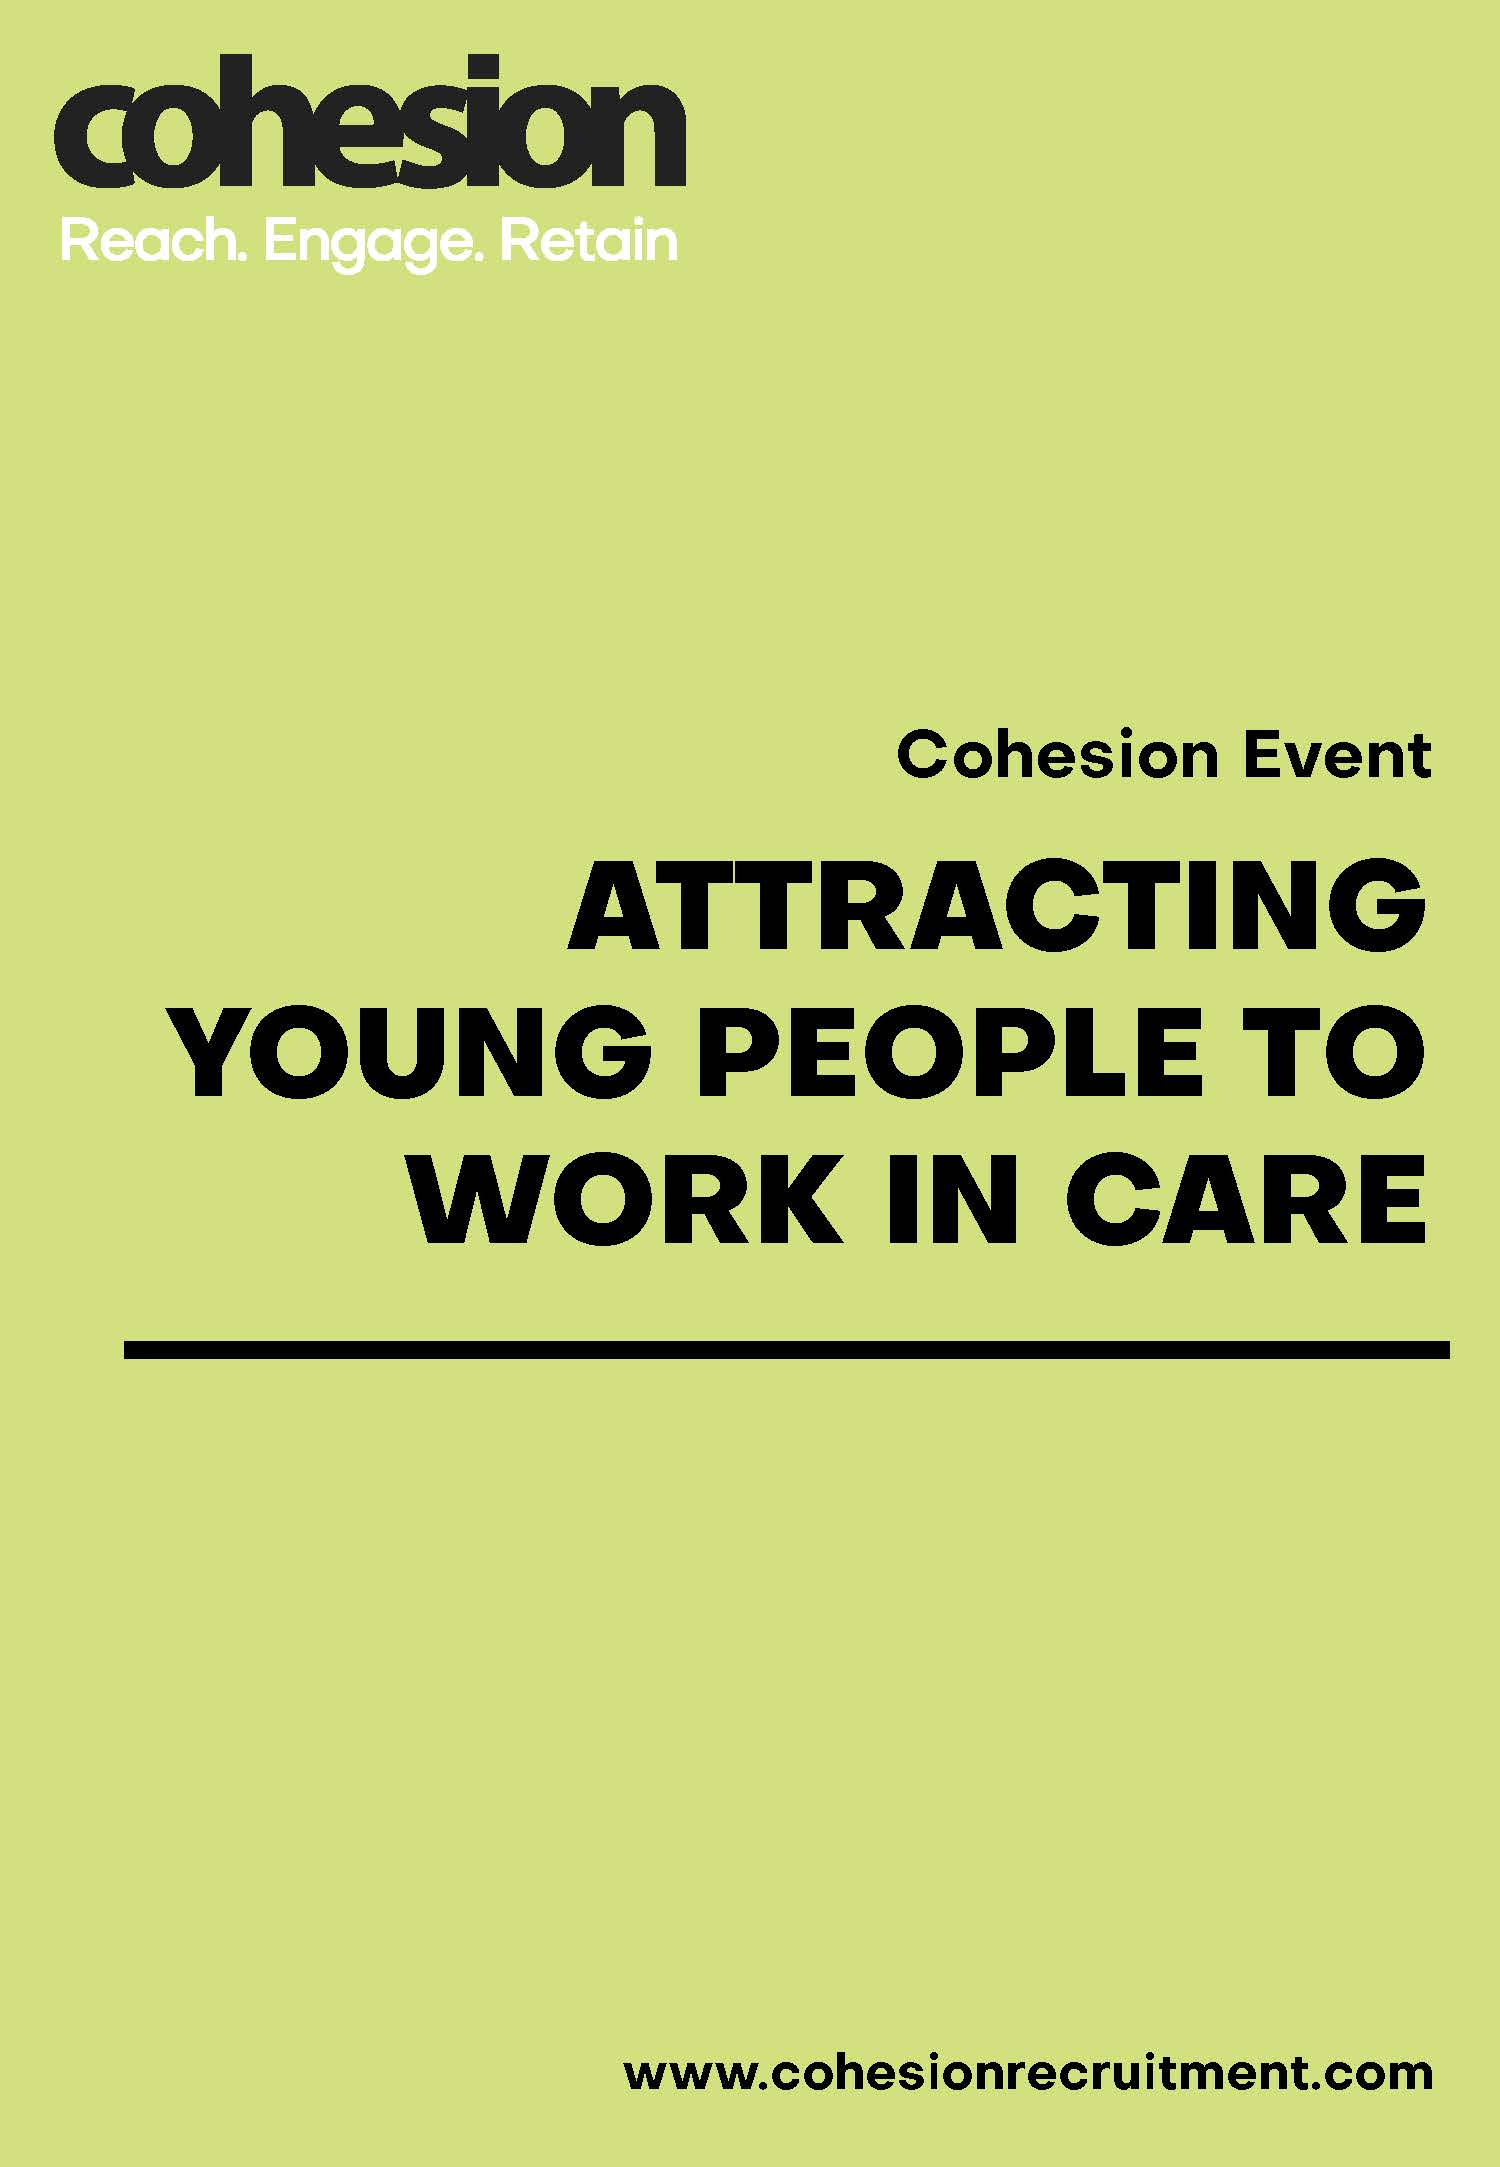 Recruiting Young People to Care